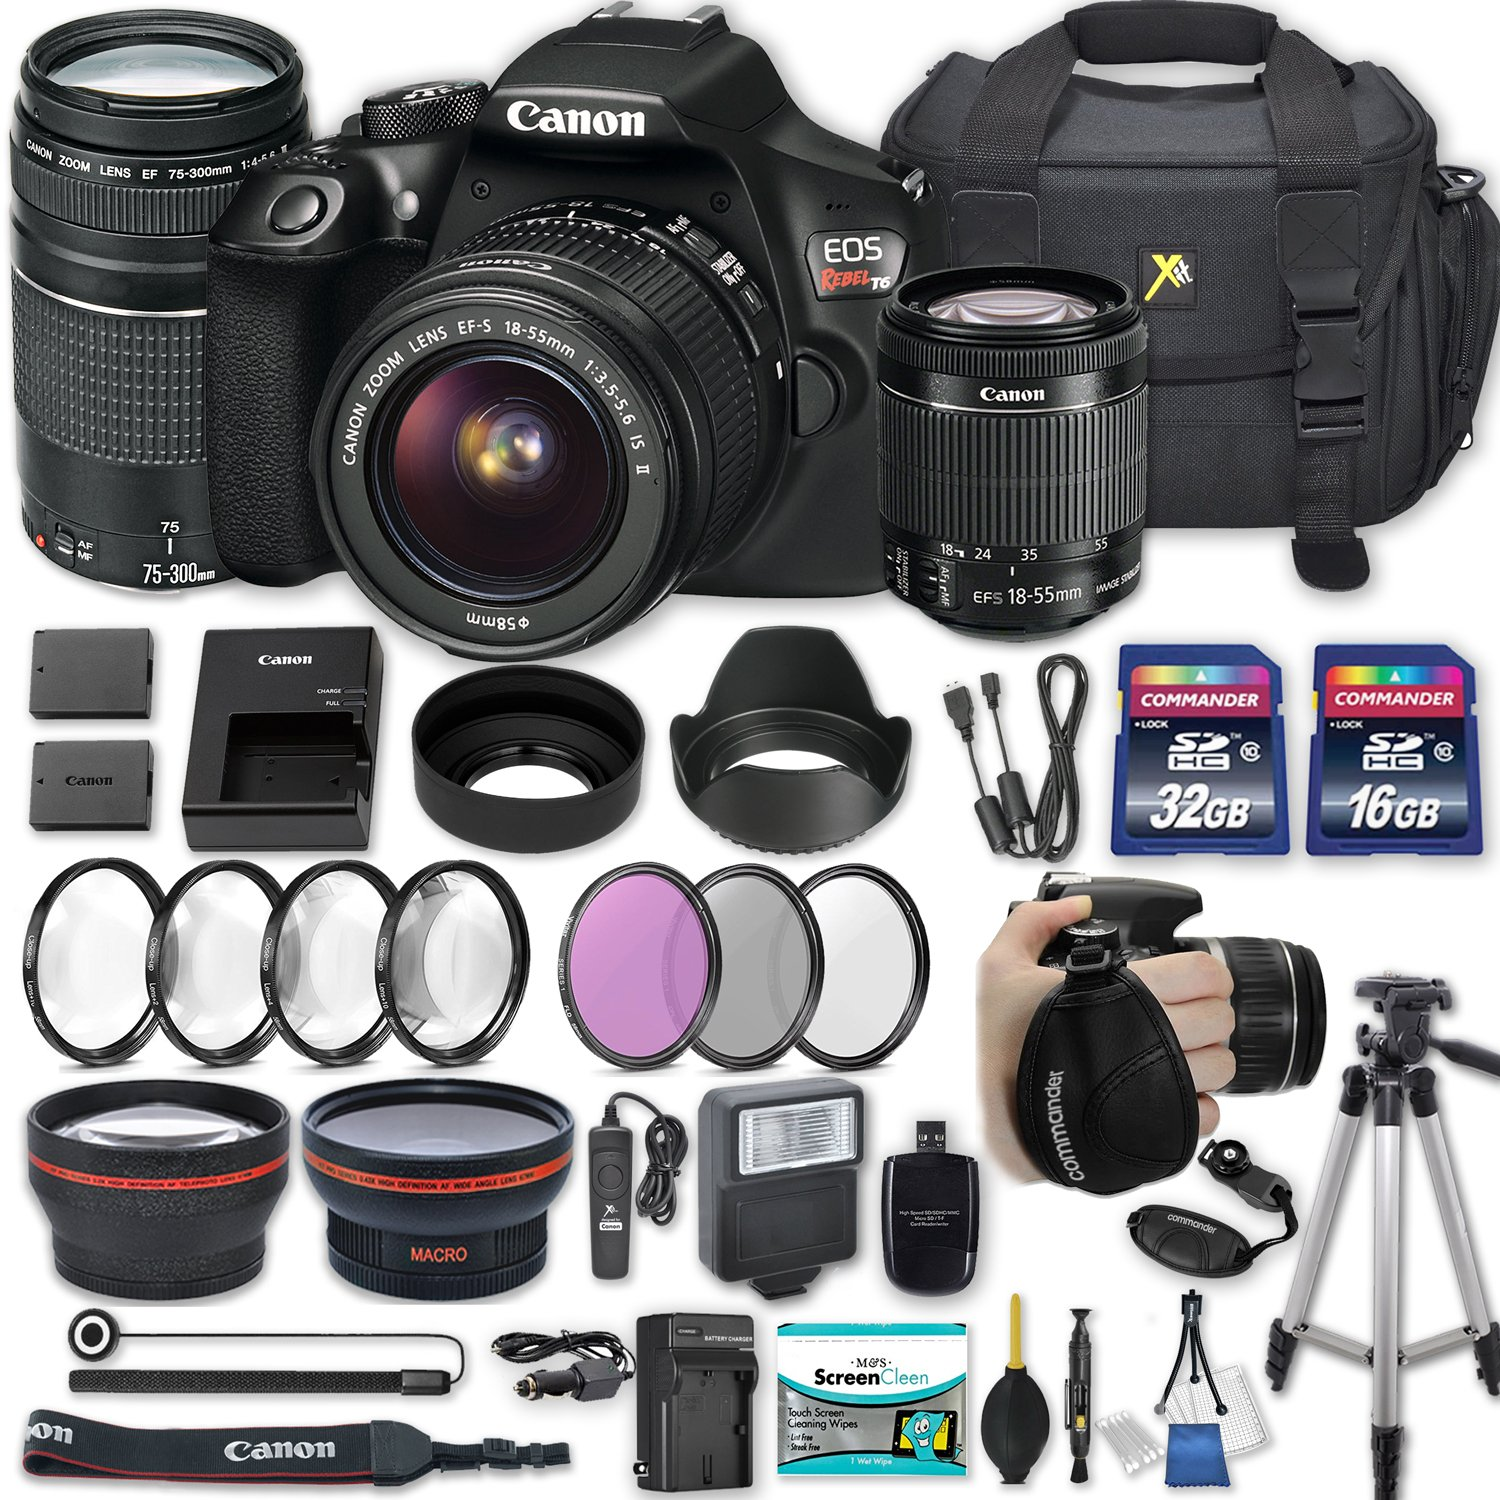 Canon EOS Rebel T6 DSLR Camera with EF-S 18-55mm f/3.5-5.6 IS II Lens + EF 75-300mm f/4-5.6 III + 2 Memory Cards + 2 Aux Lenses + 50'' Tripod + Accessories Bundle (25 Items) by Canon